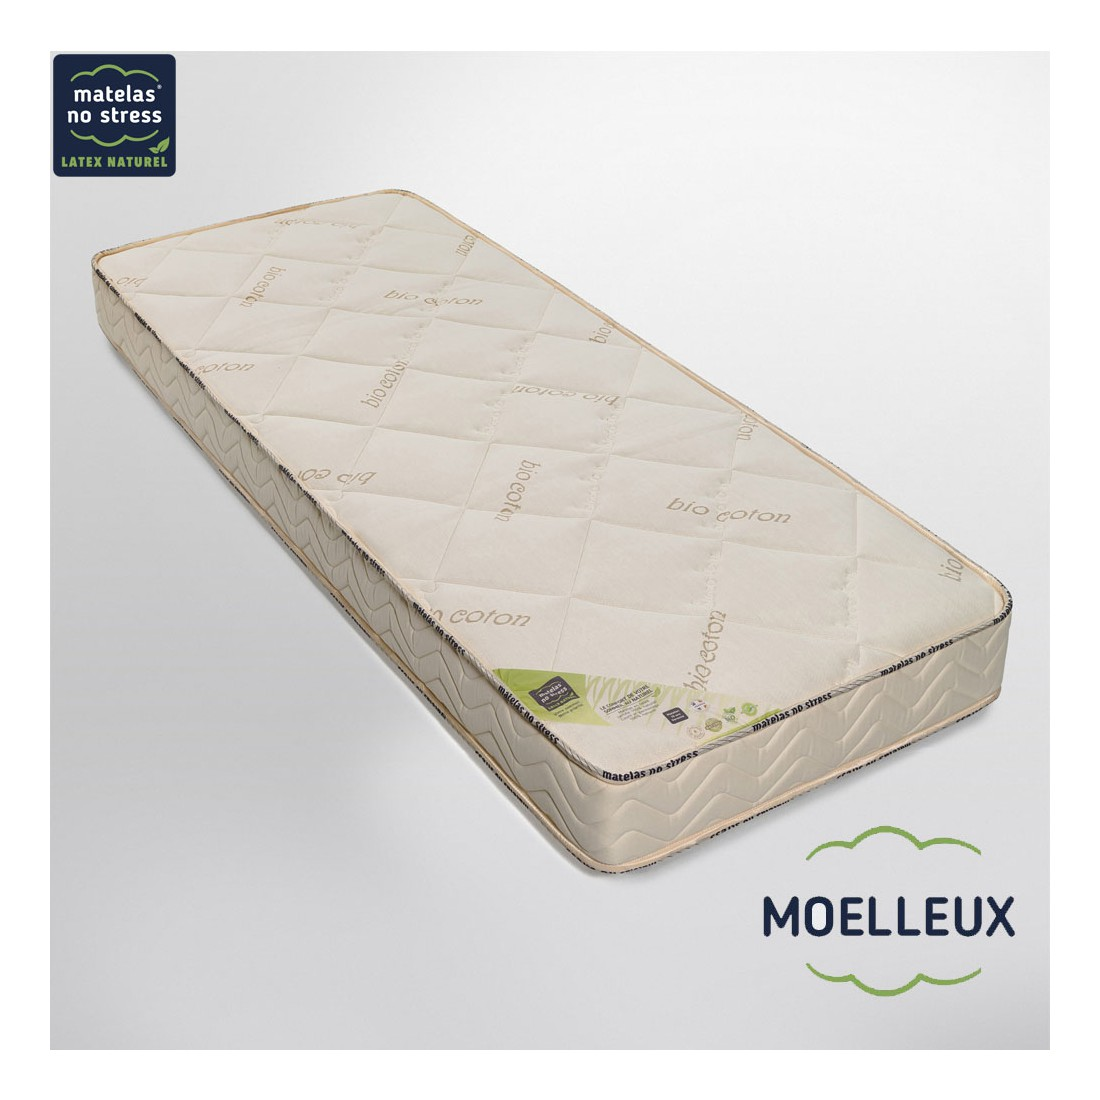 matelas moelleux en latex naturel 160x200. Black Bedroom Furniture Sets. Home Design Ideas